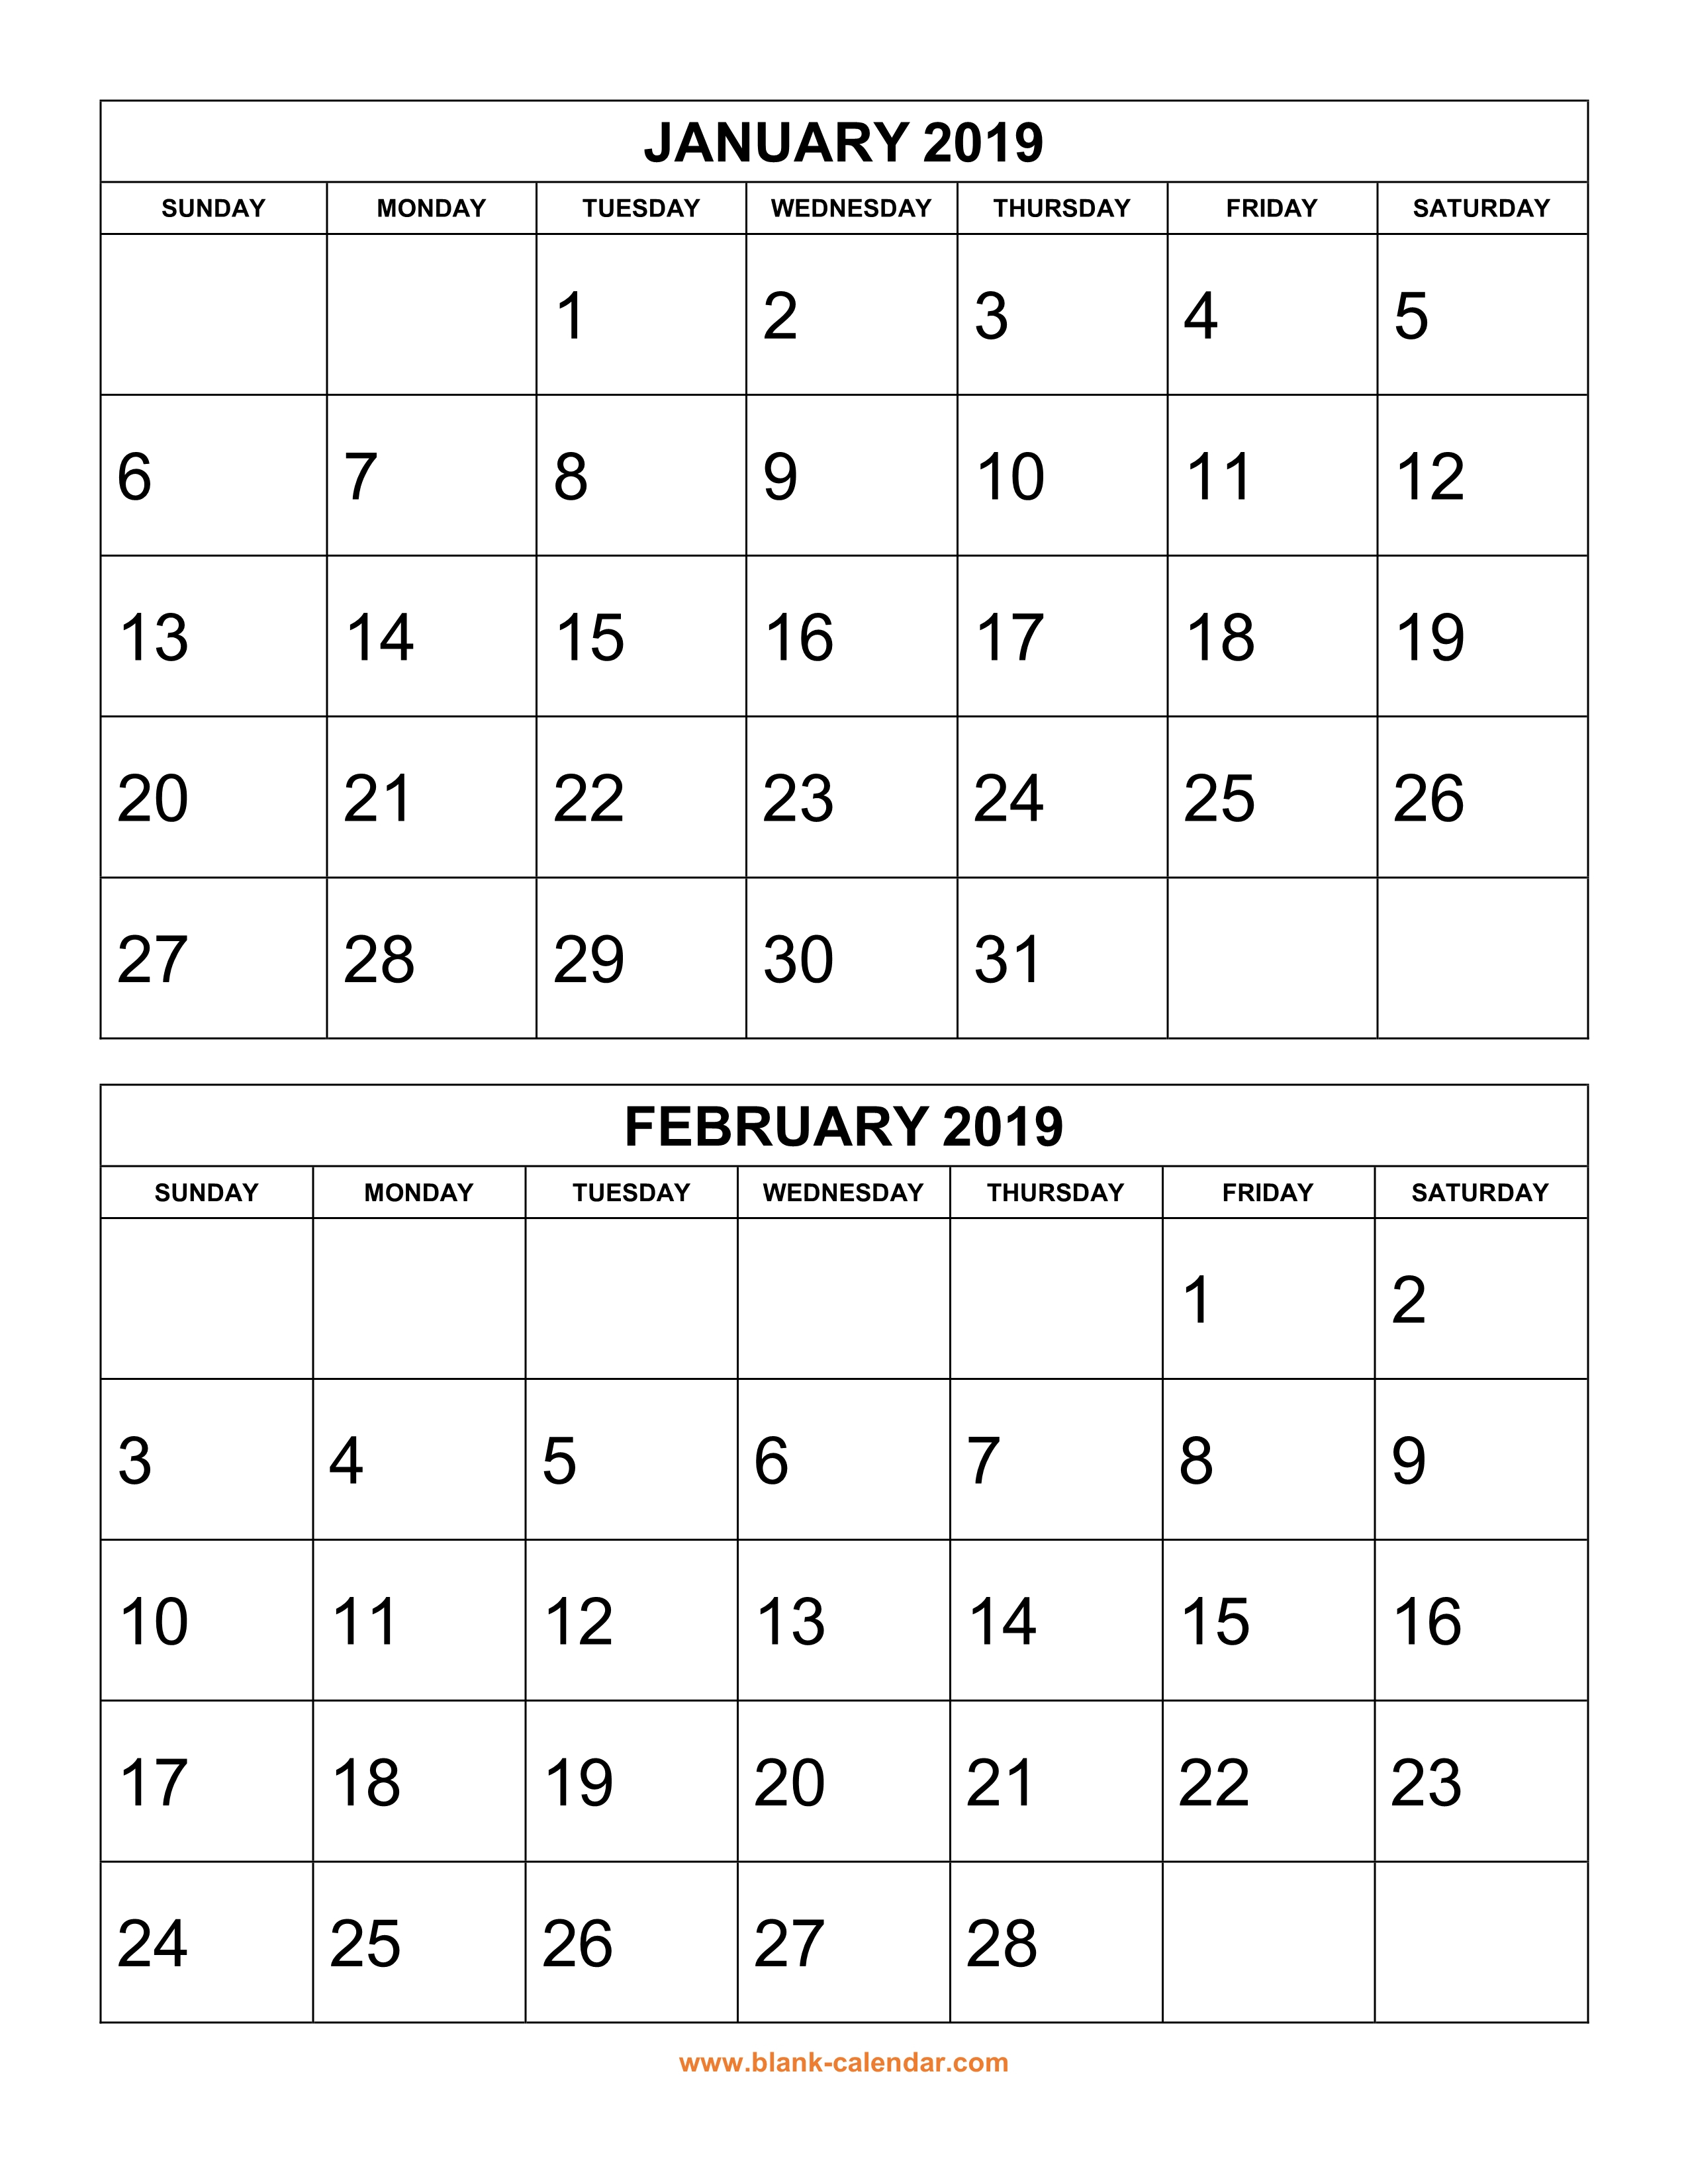 Free Download Printable Calendar 2019, 2 Months Per Page, 6 Pages pertaining to Blank Calendar Month By Month